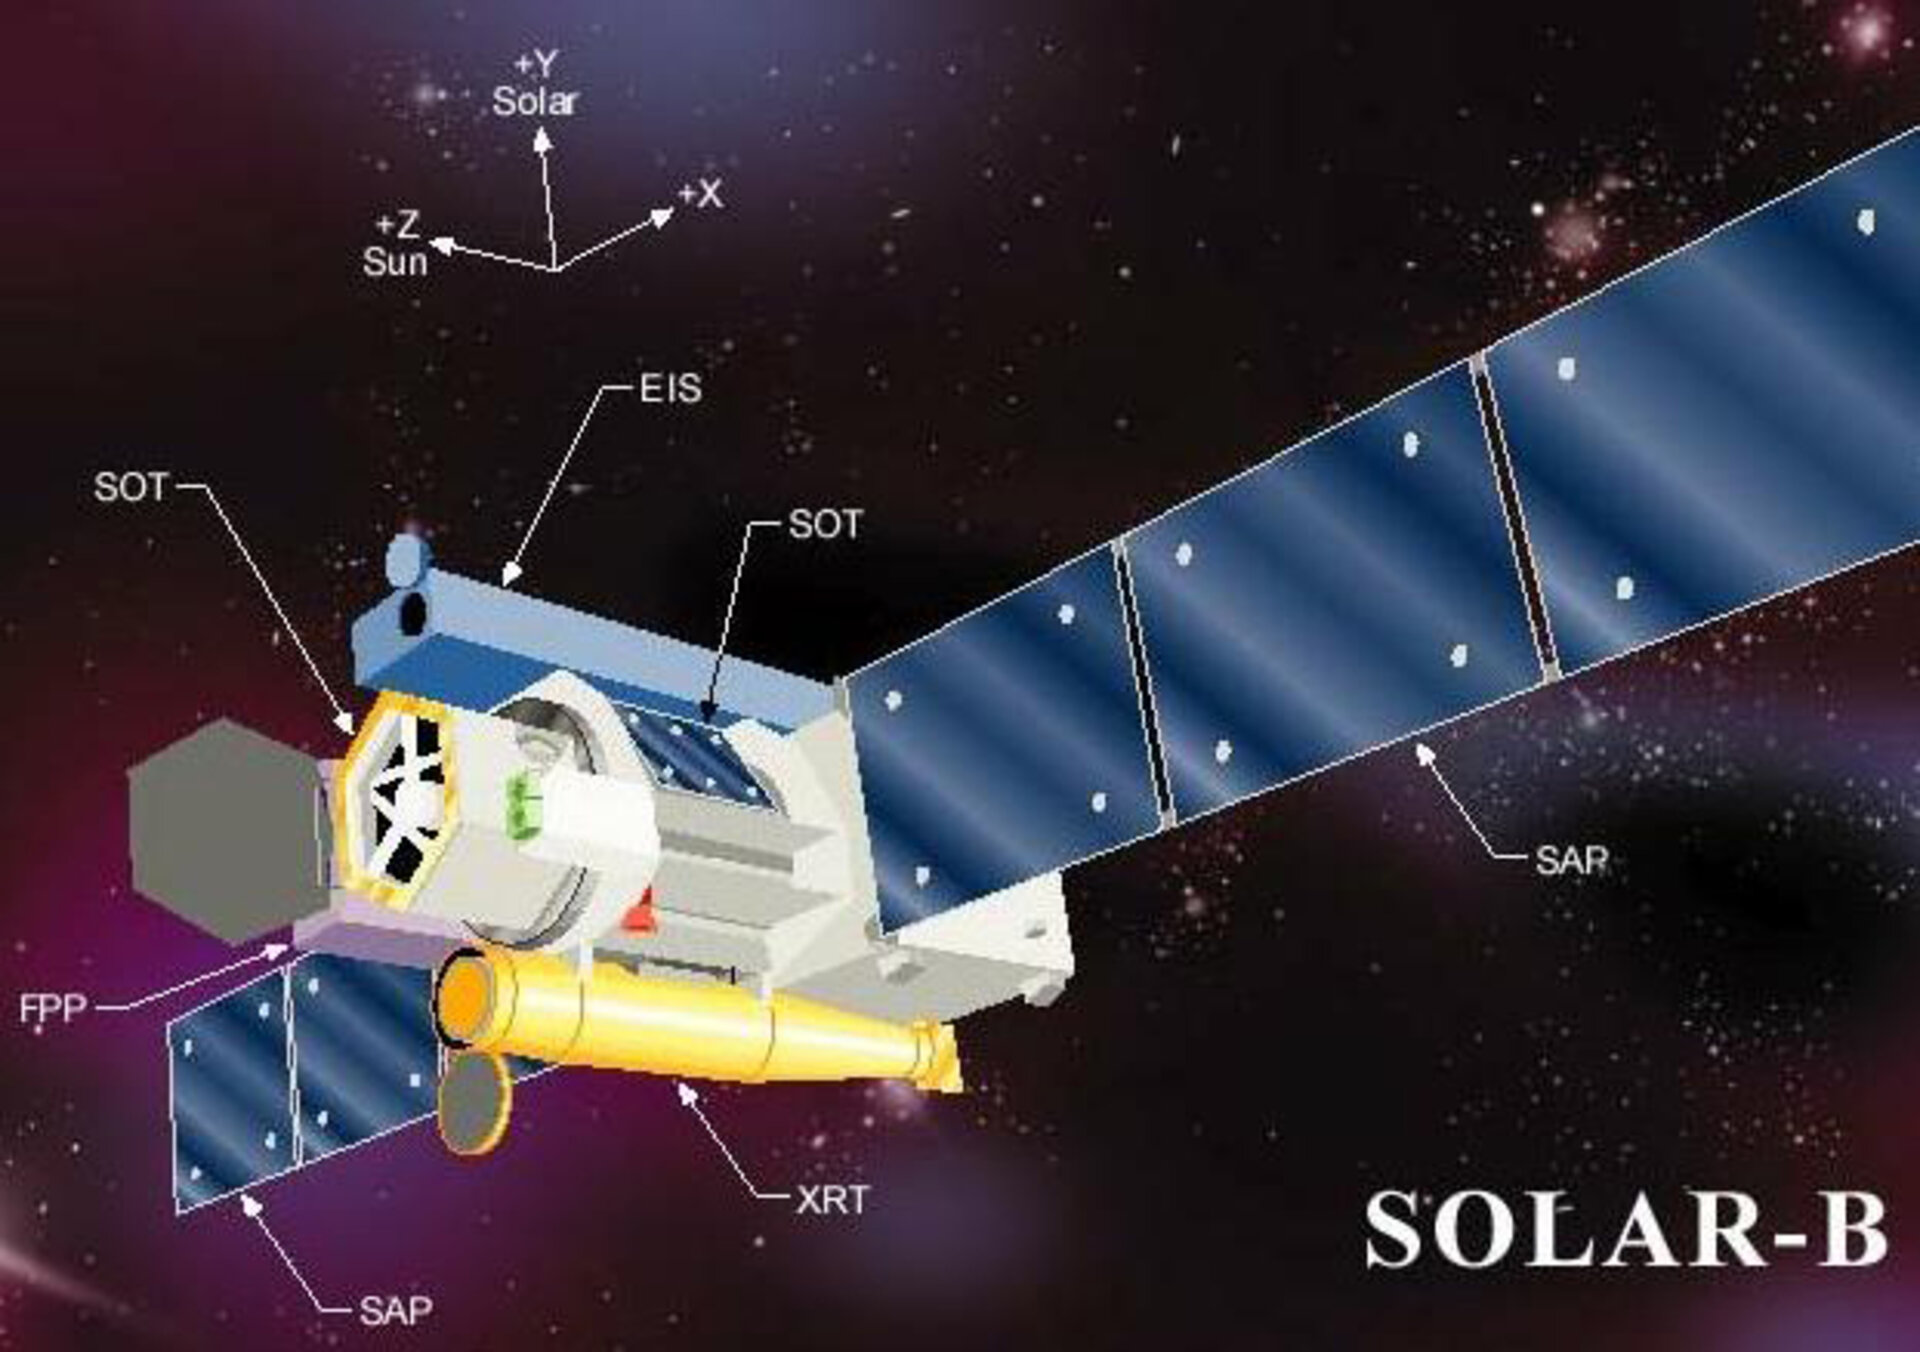 Hinode (Solar-B) and its scientific instruments